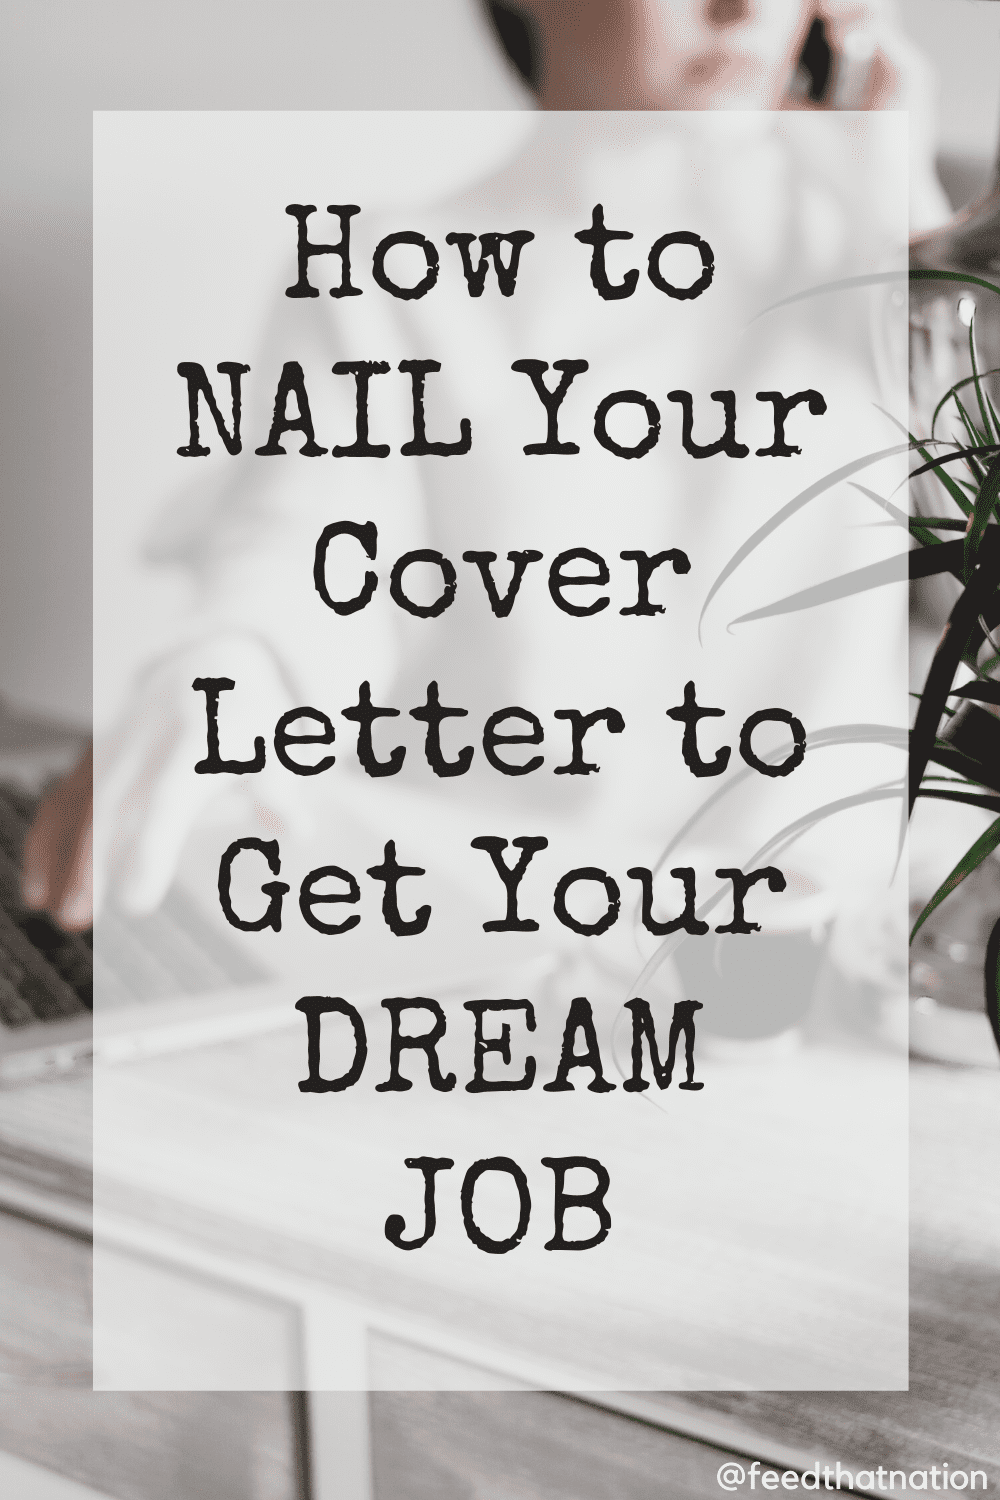 How to Nail Your Cover Letter to Get Your Dream Job